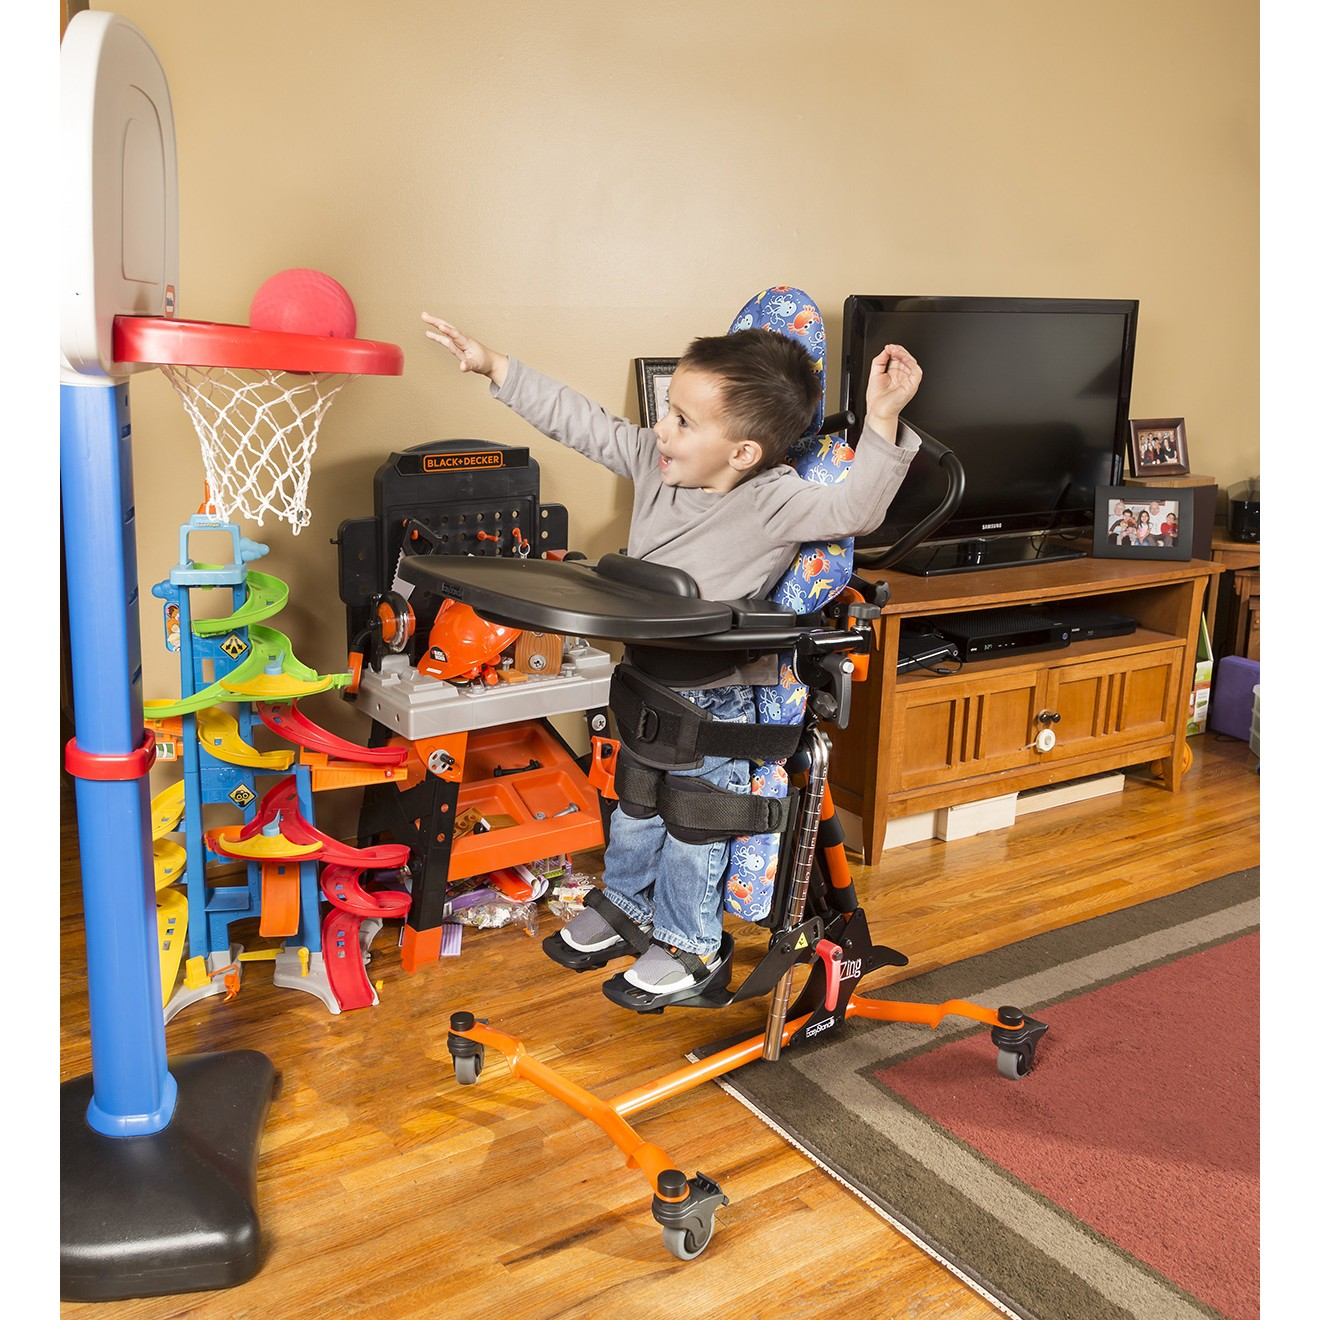 Child standing in a EasyStand Zing MPS TT Size 1 Playing Basketball